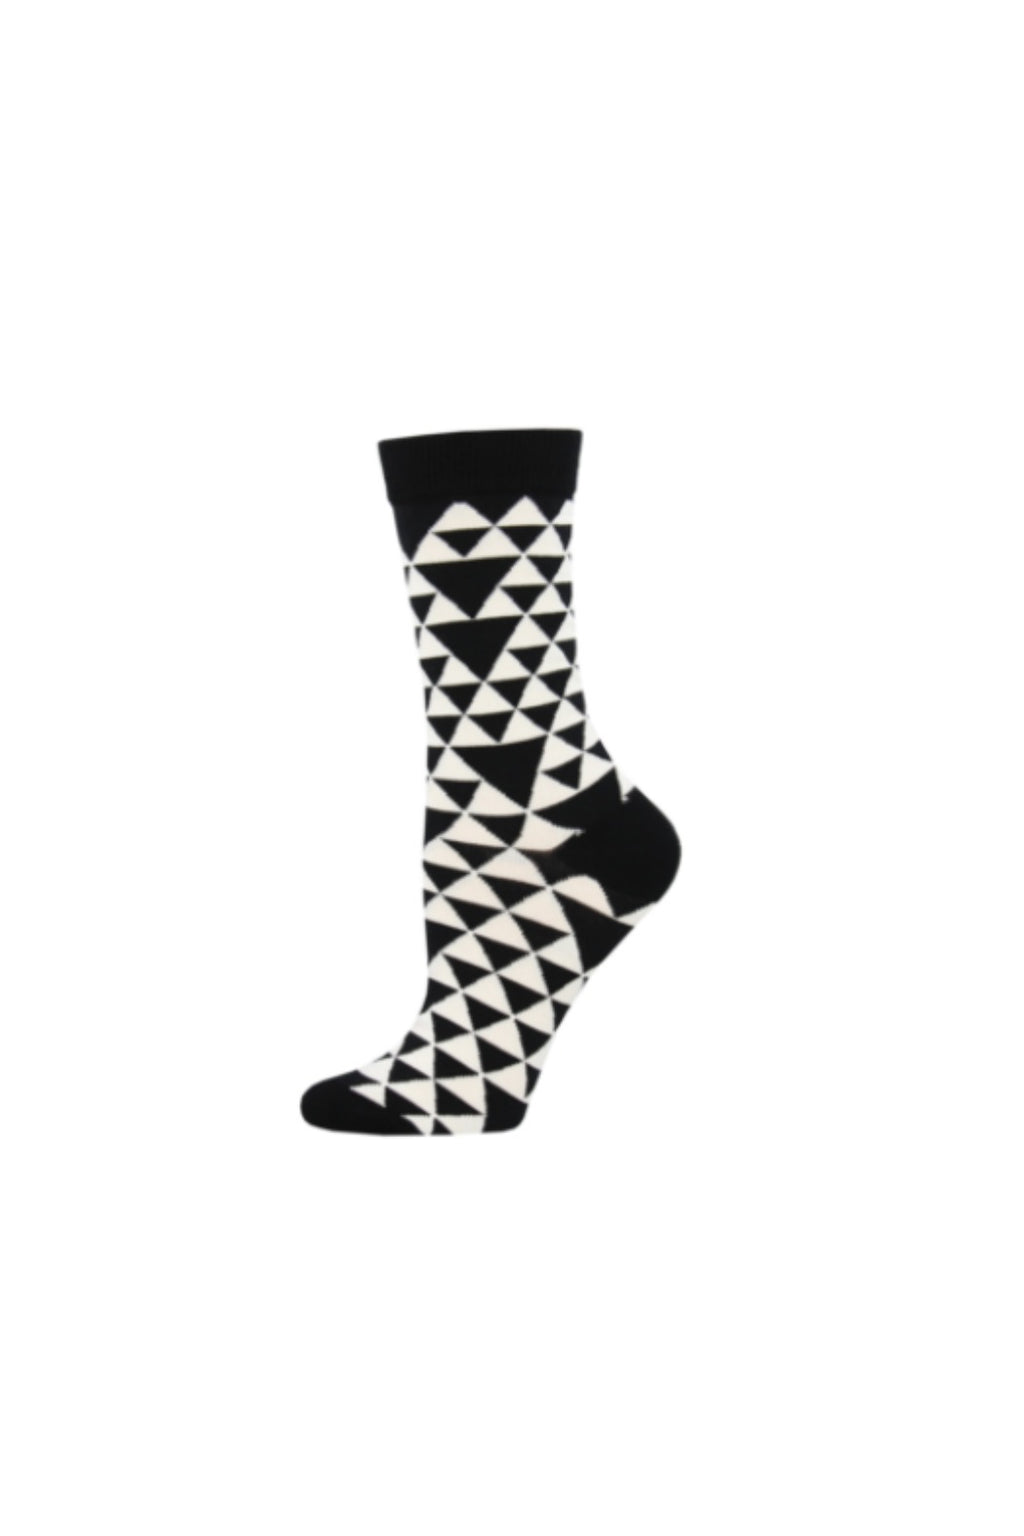 Socksmith Bamboo Socks - Triangle